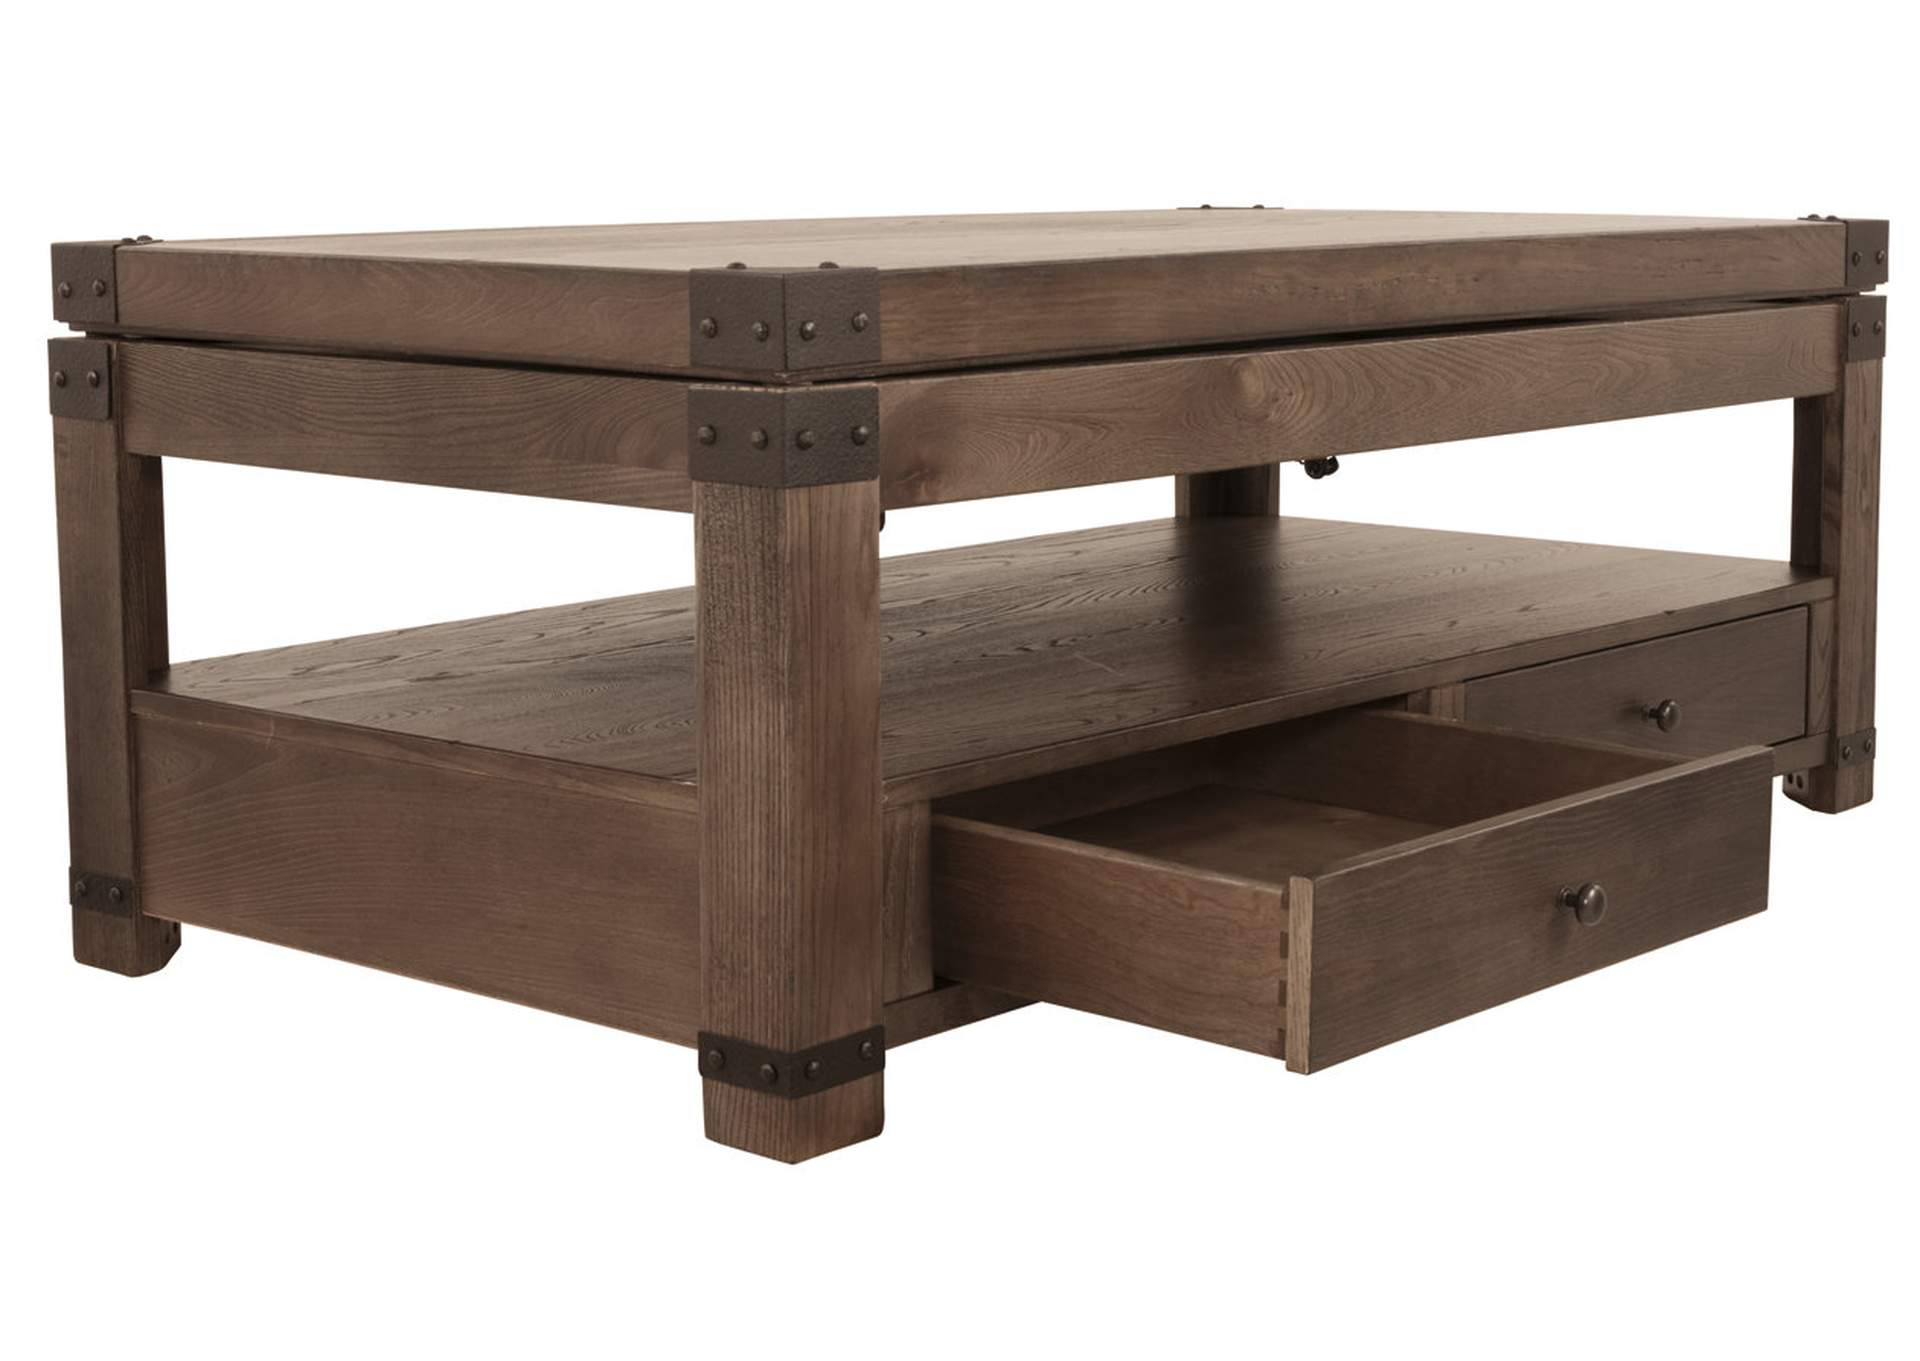 Burladen Grayish Brown Rectangular Lift Top Cocktail Table,Signature Design By Ashley